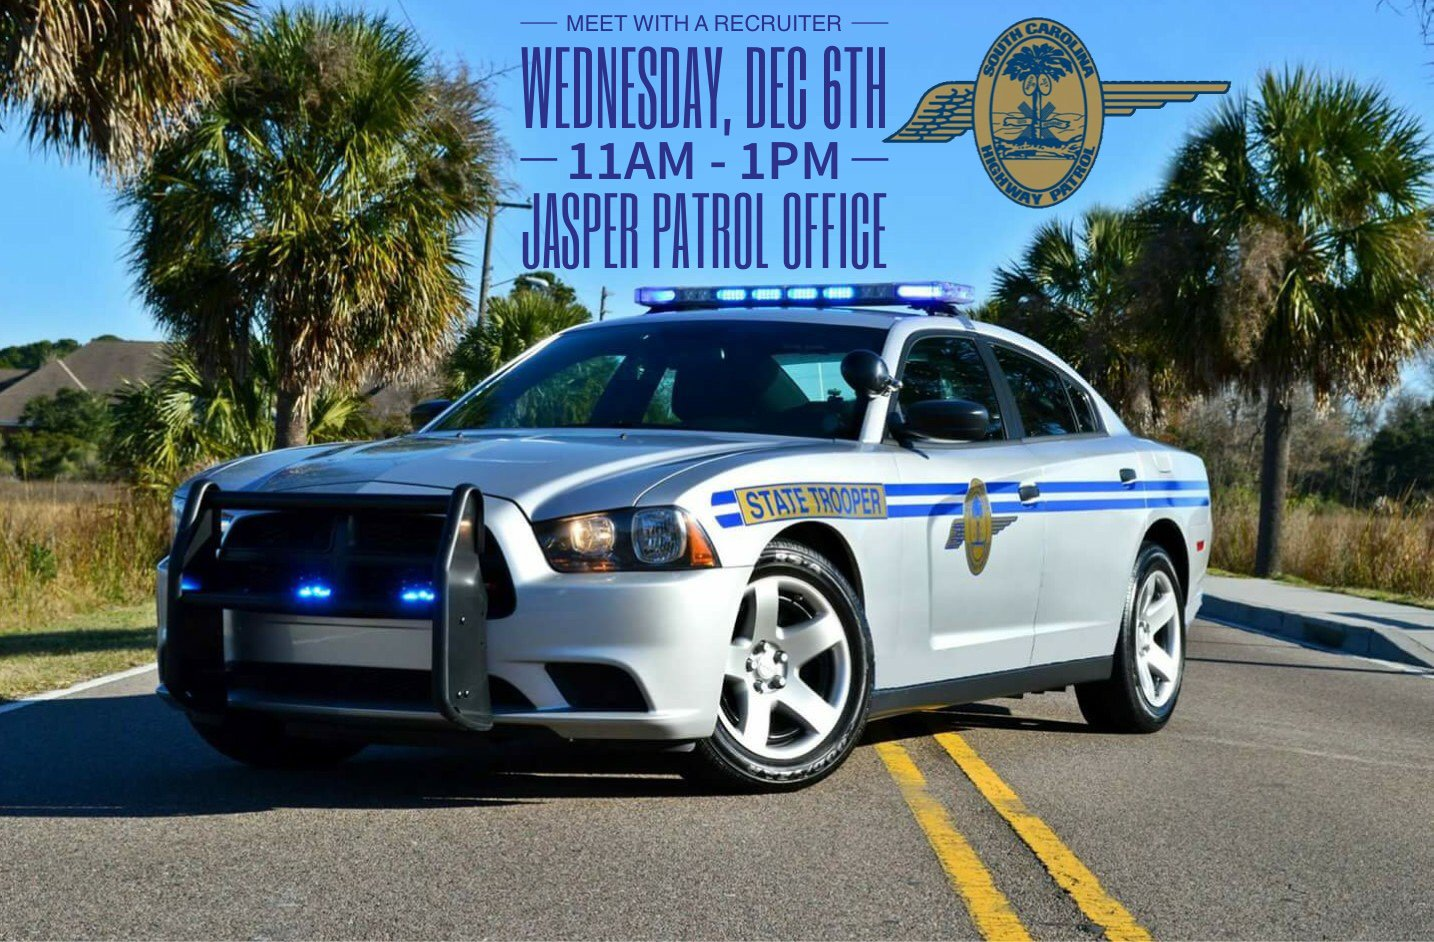 sc highway patrol flyer_337674